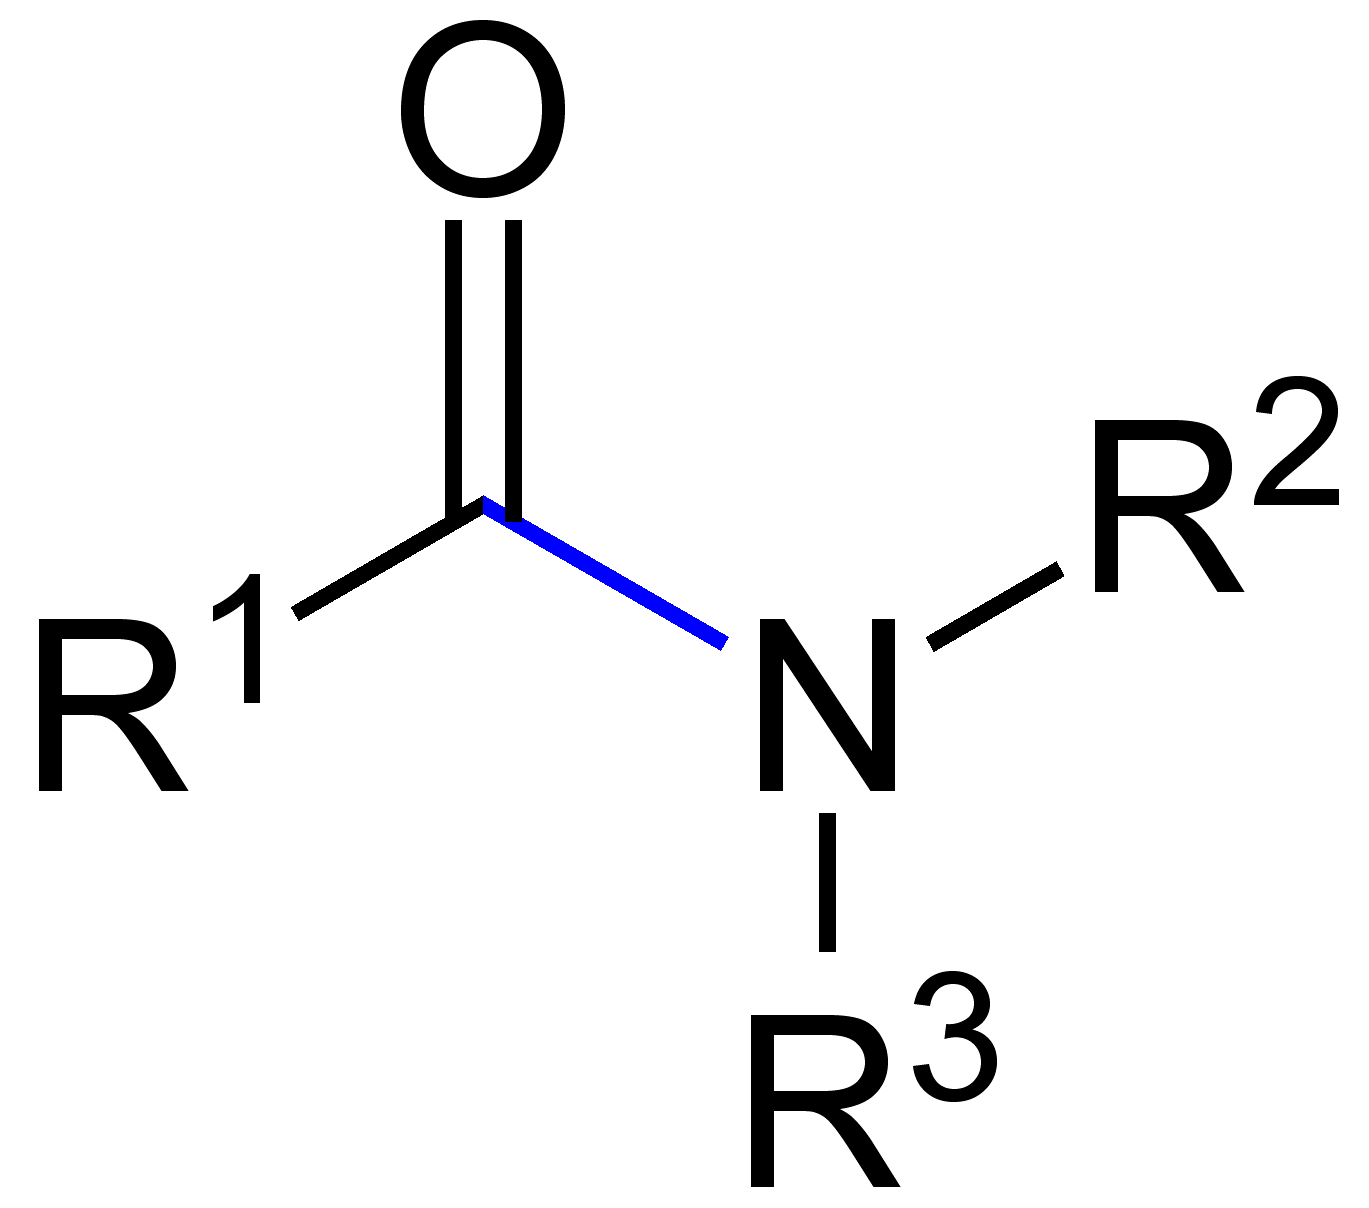 E Car >> File:Carboxamide v.2.png - Wikimedia Commons